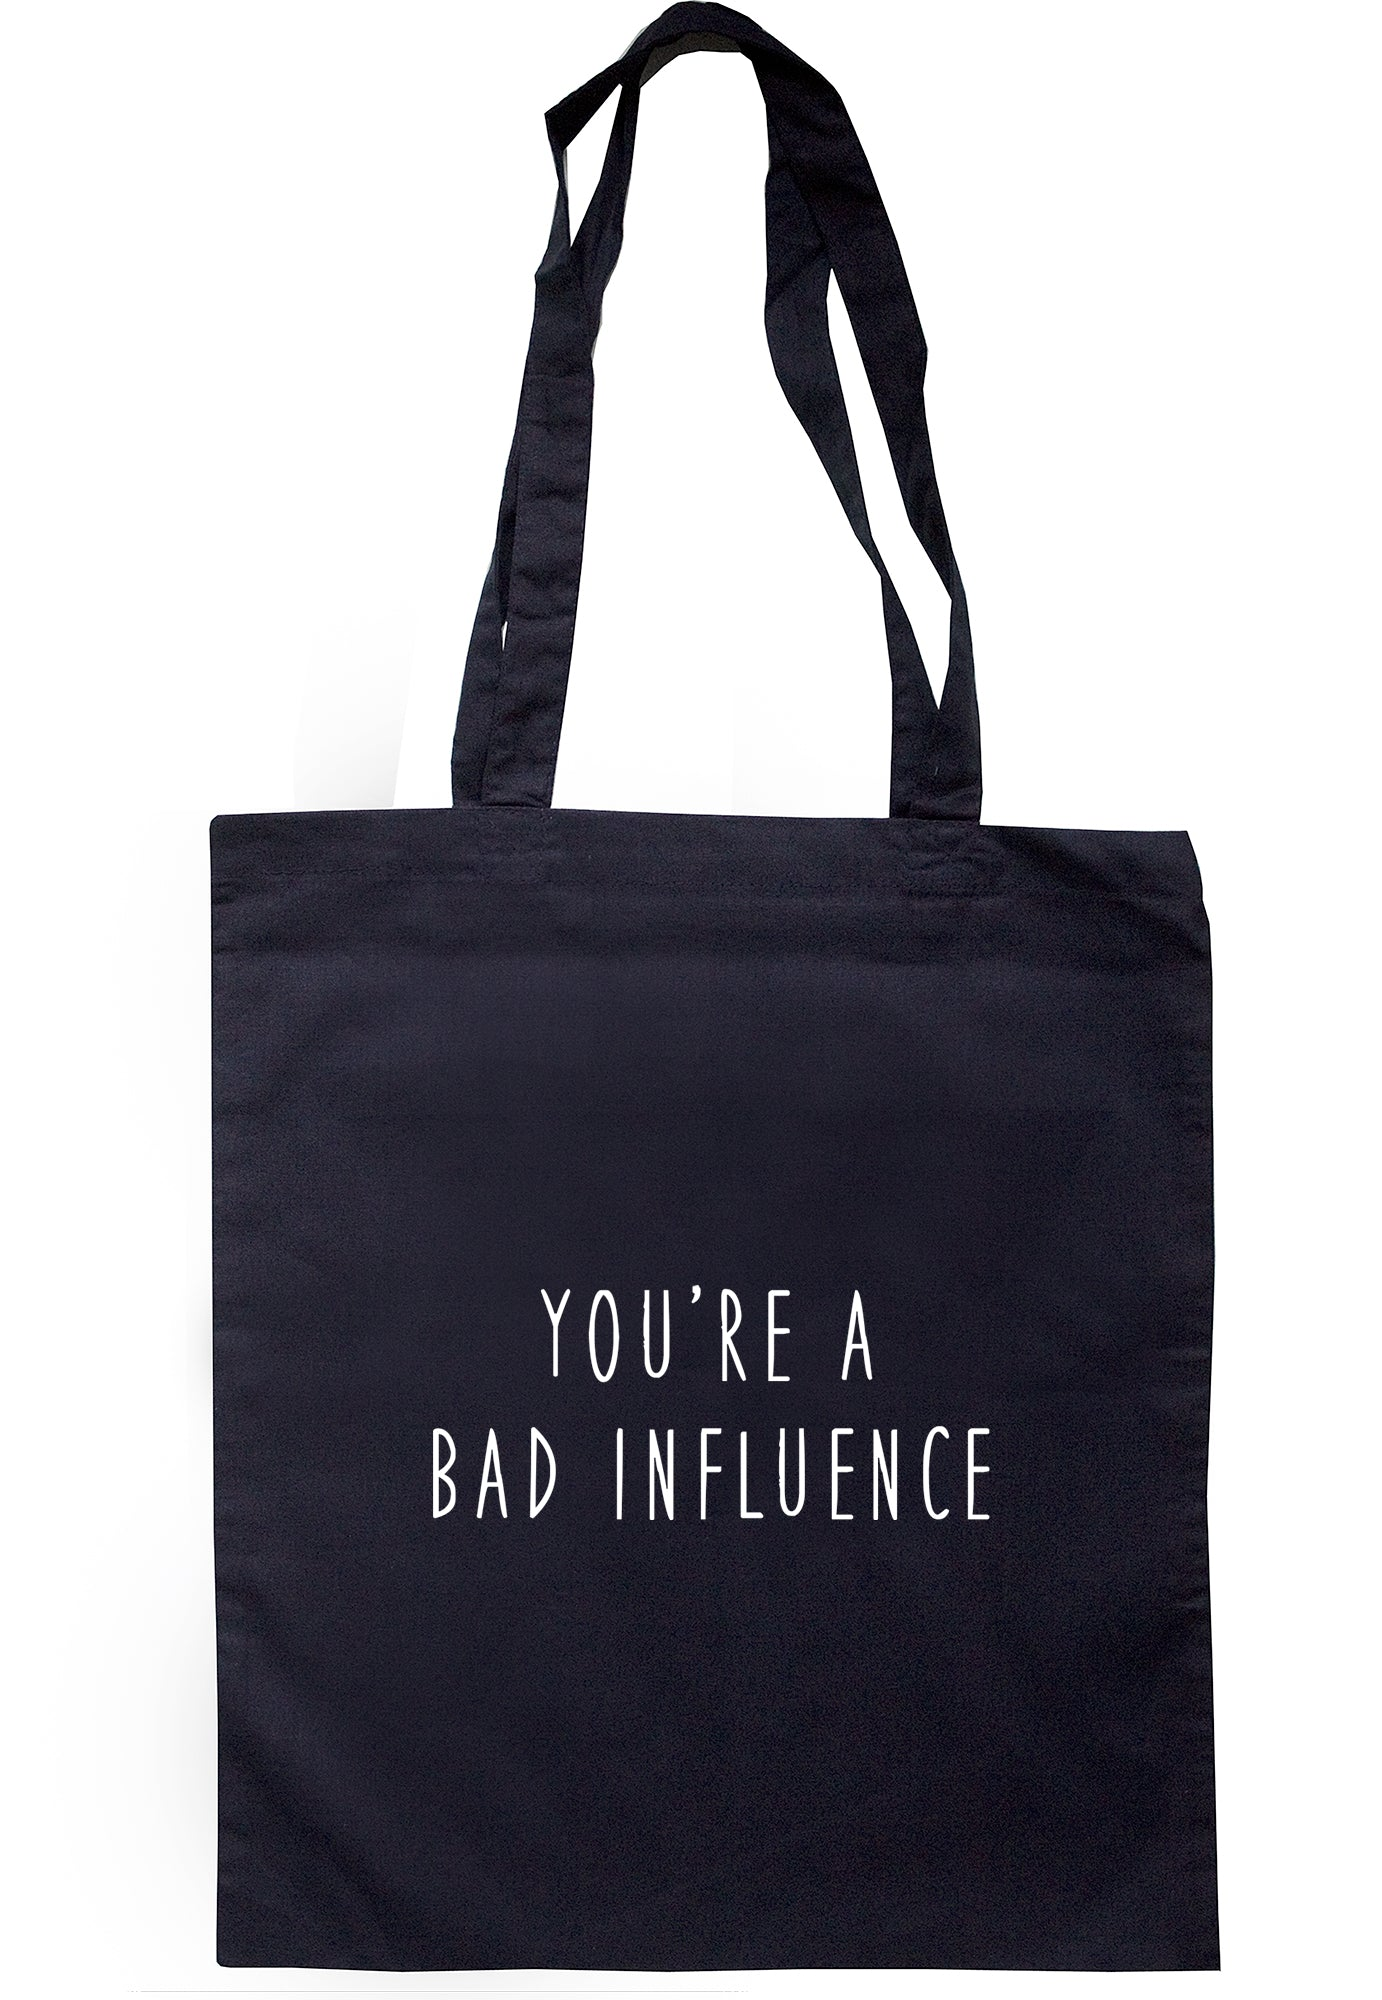 You're A Bad Influence Tote Bag S0992 - Illustrated Identity Ltd.